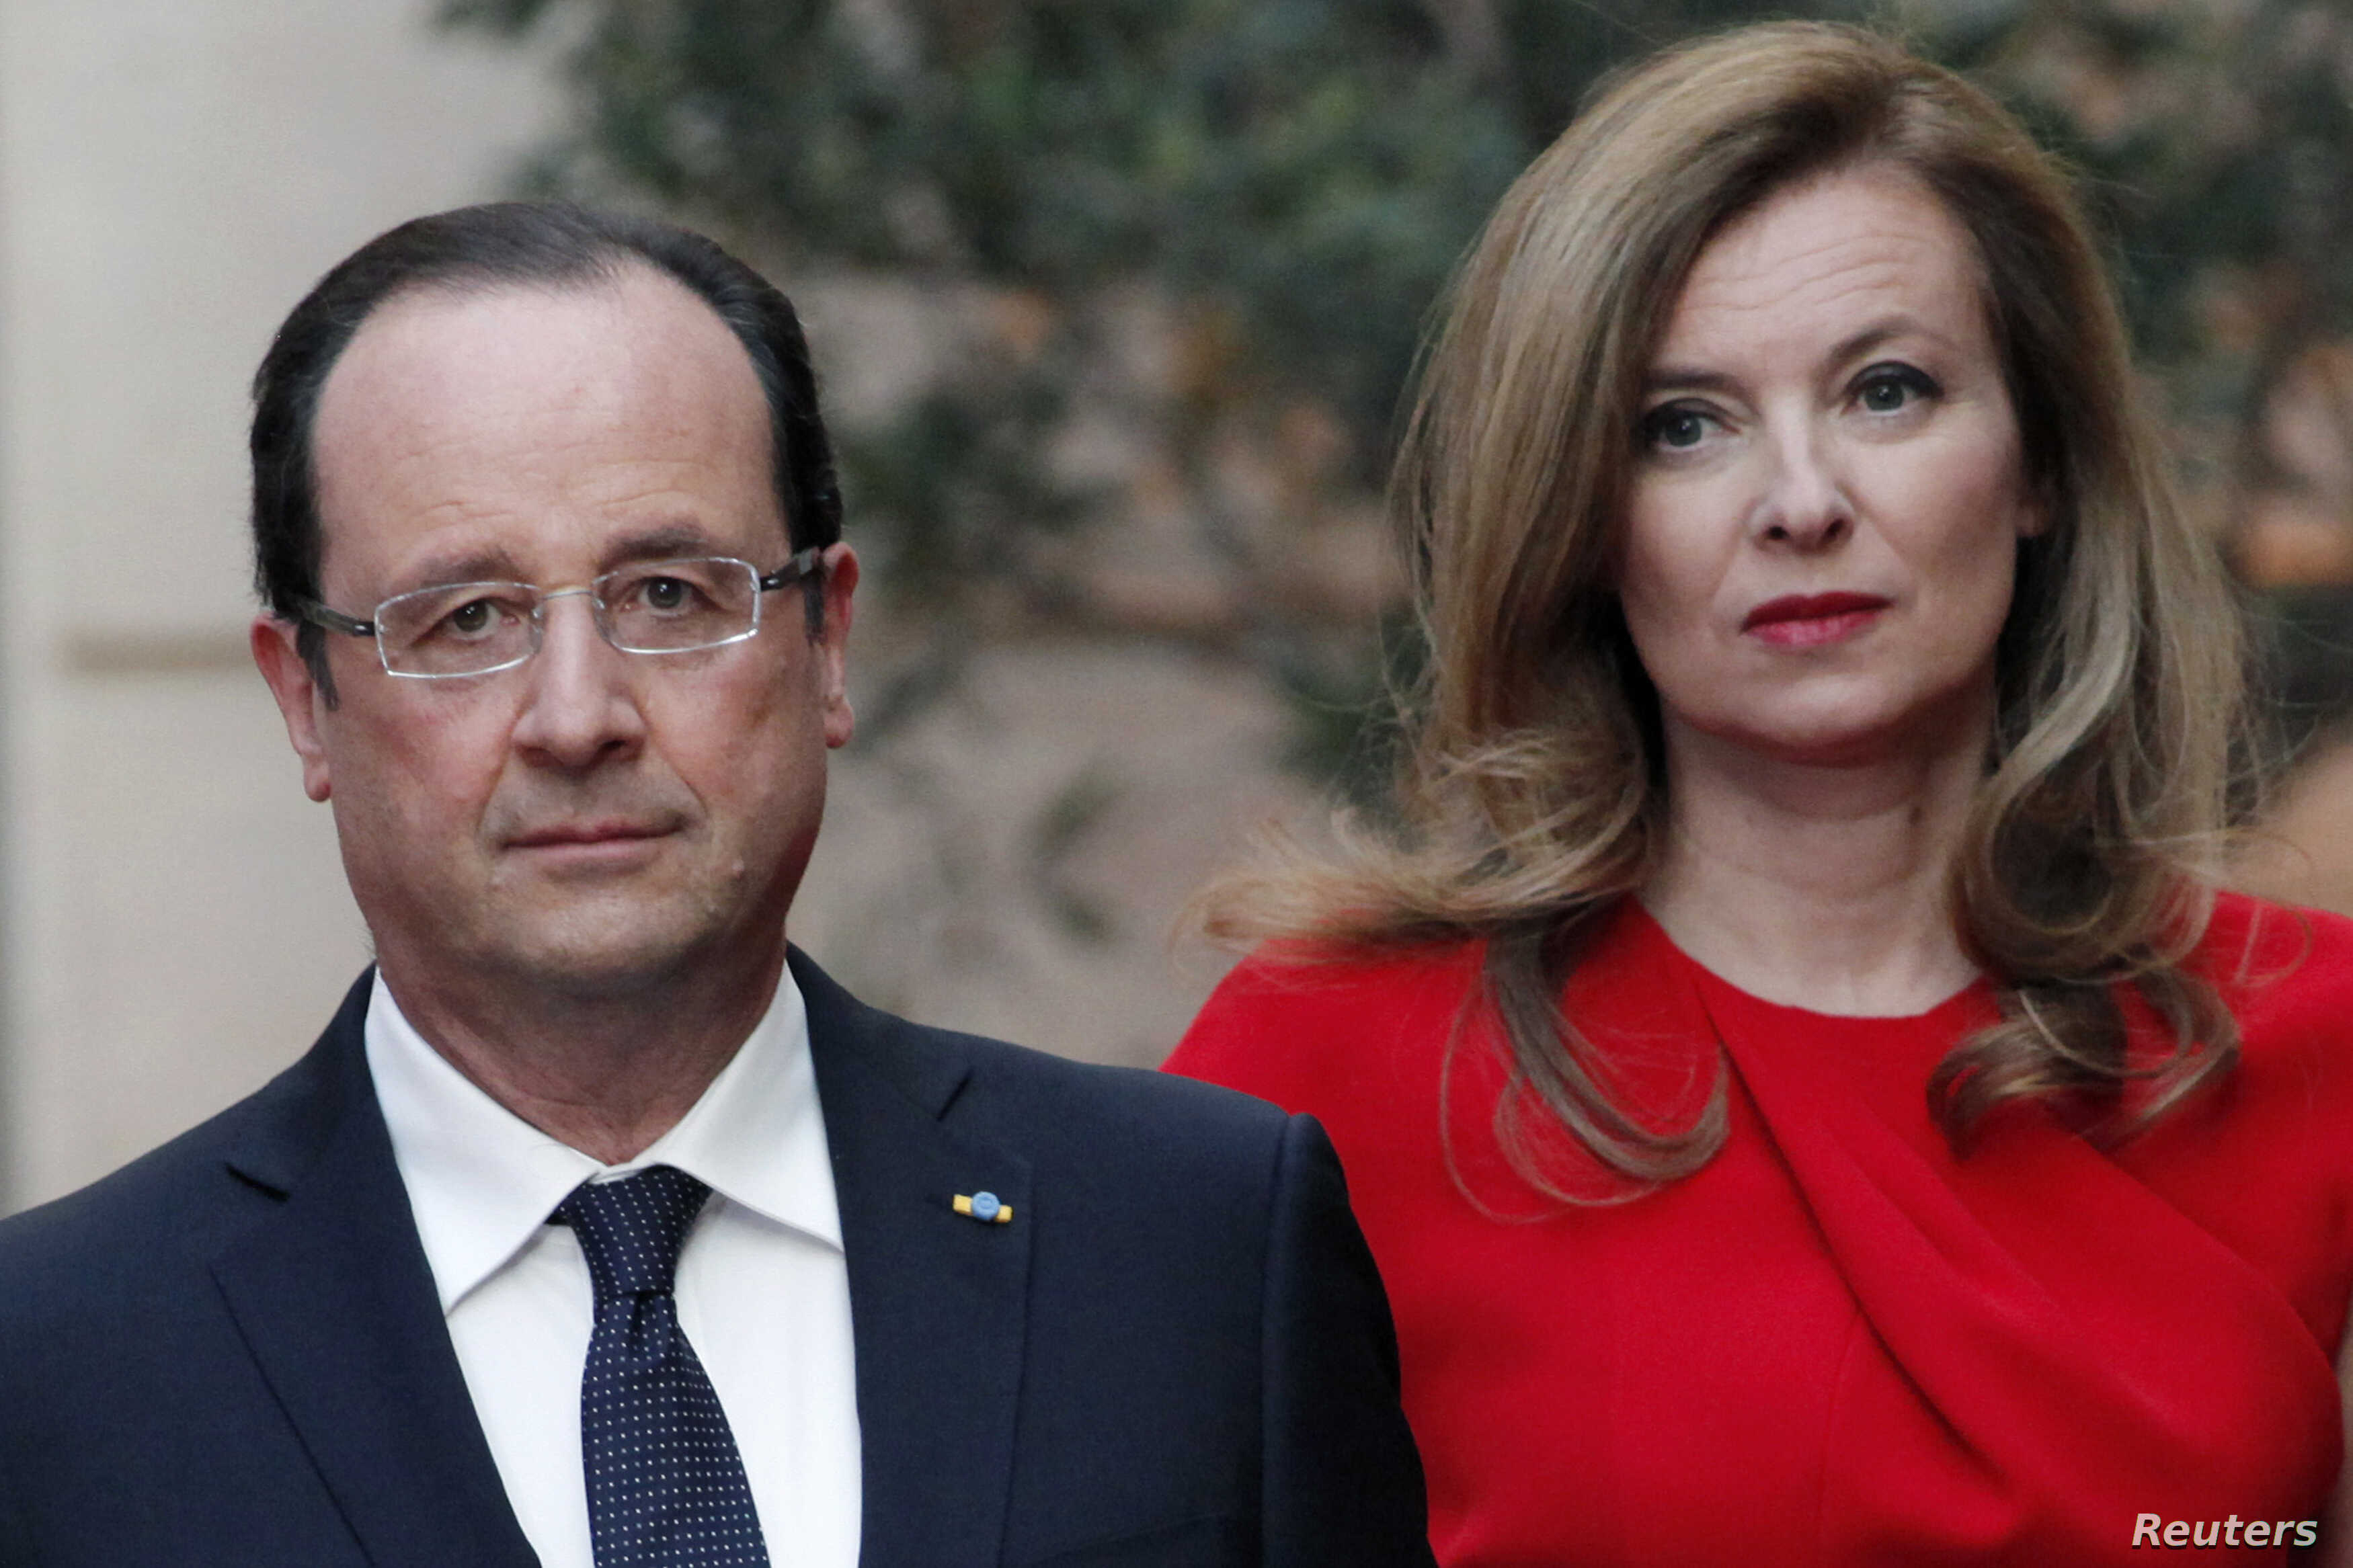 FILE - French President Francois Hollande (L) and his former-companion Valerie Trierweiler arrive for a state dinner at the Elysee Palace in Paris.